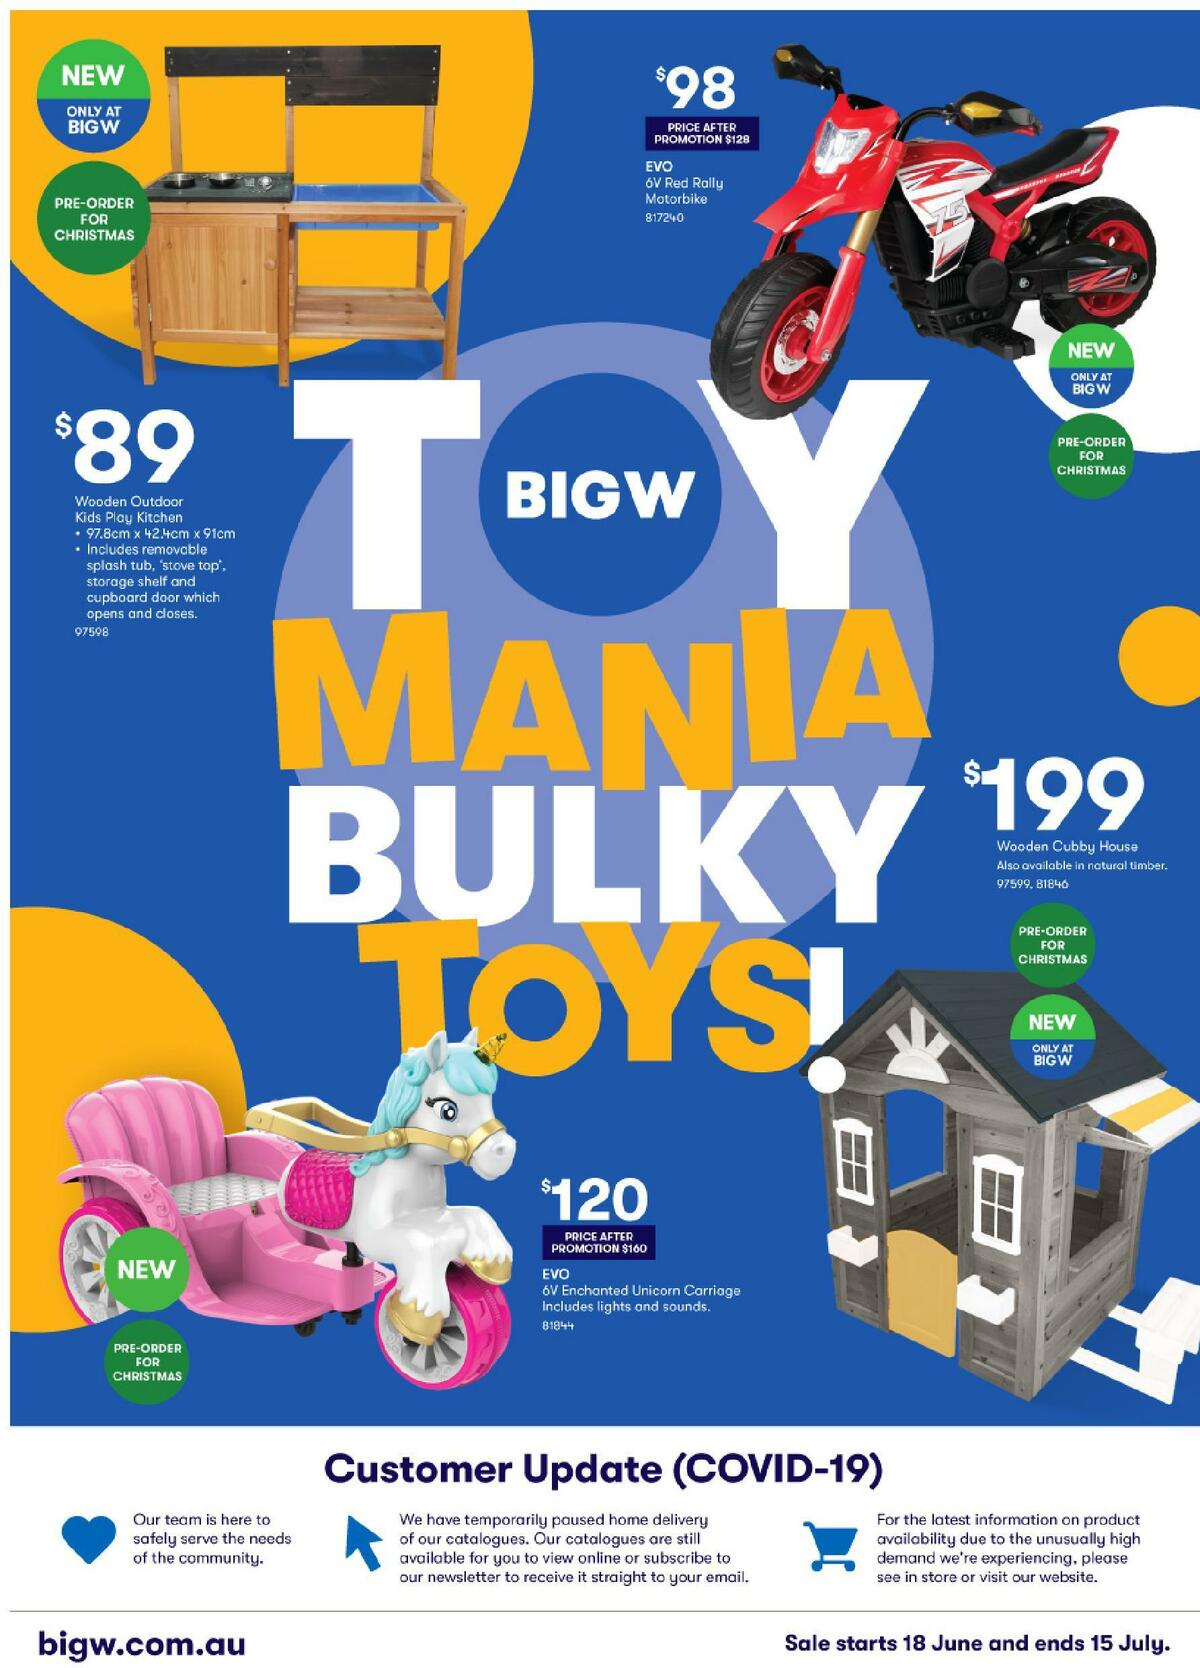 Big W Toy Mania Bulky Toys! Catalogues from June 18